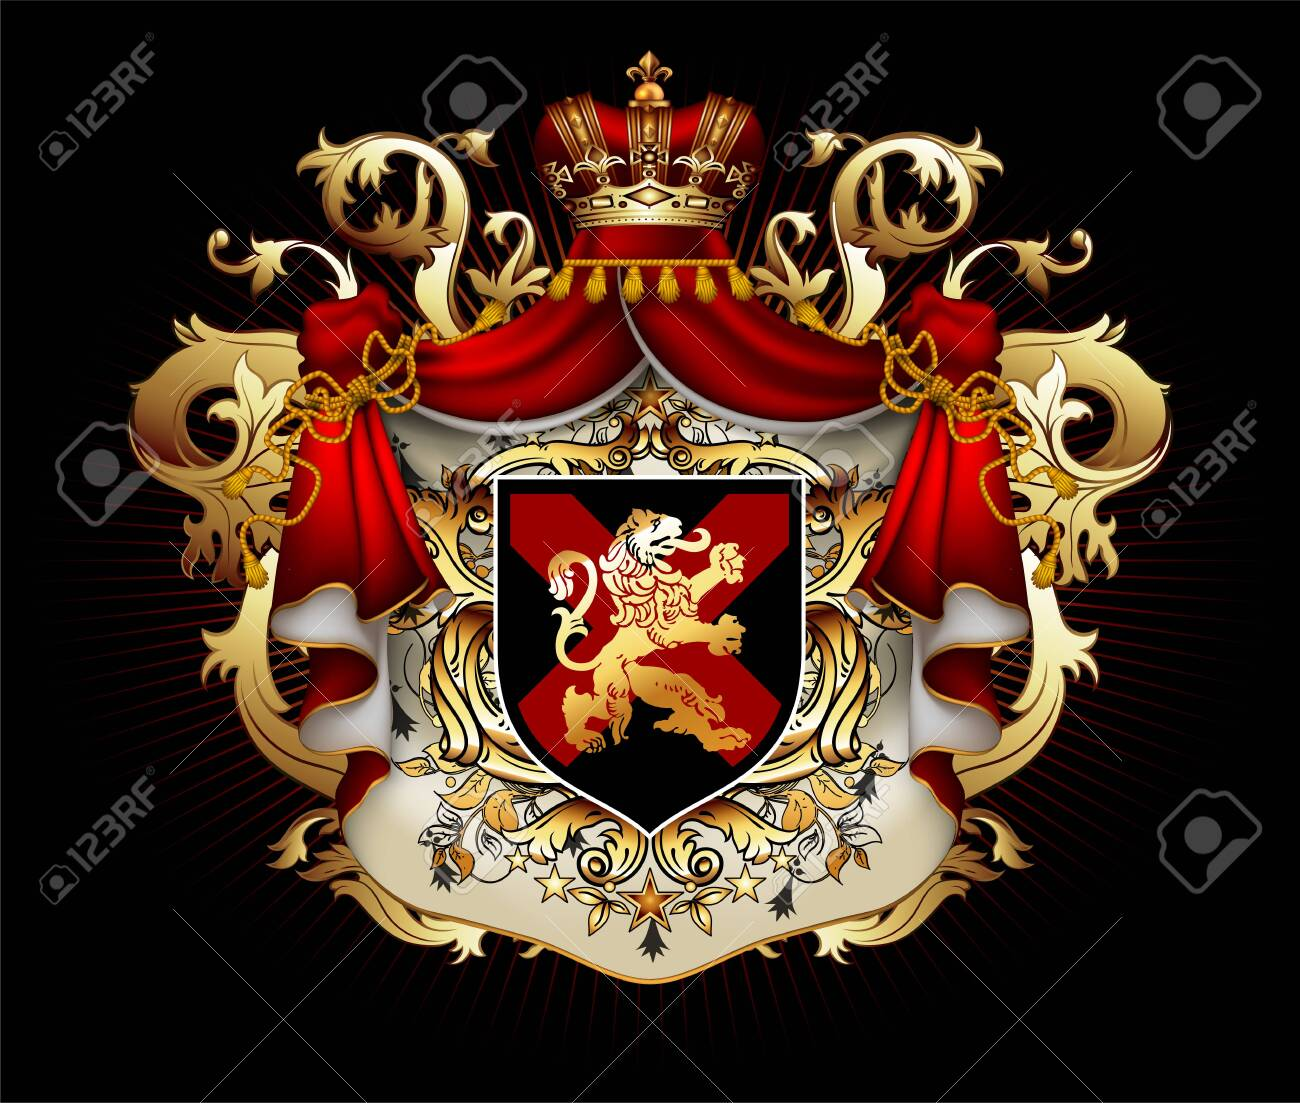 Heraldic background with a red ermine royal mantle with a crown and shield. 3D vector. High detailed realistic illustration - 129732282